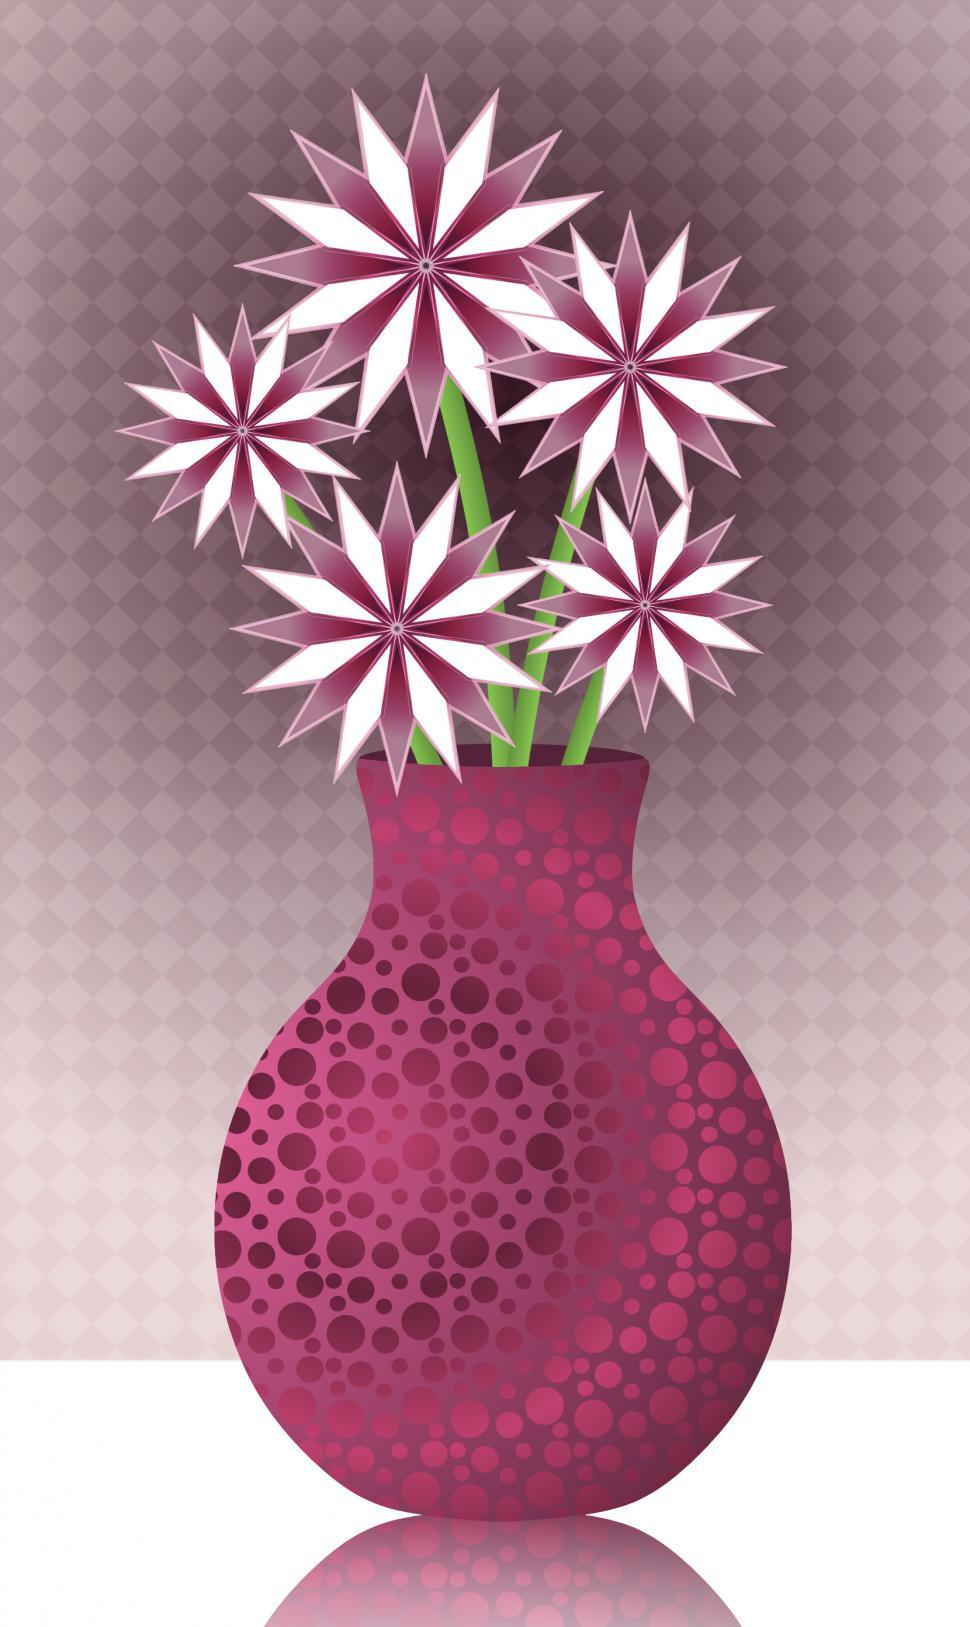 Get Free Stock Photo Of Pink And White Flowers In Vase Online